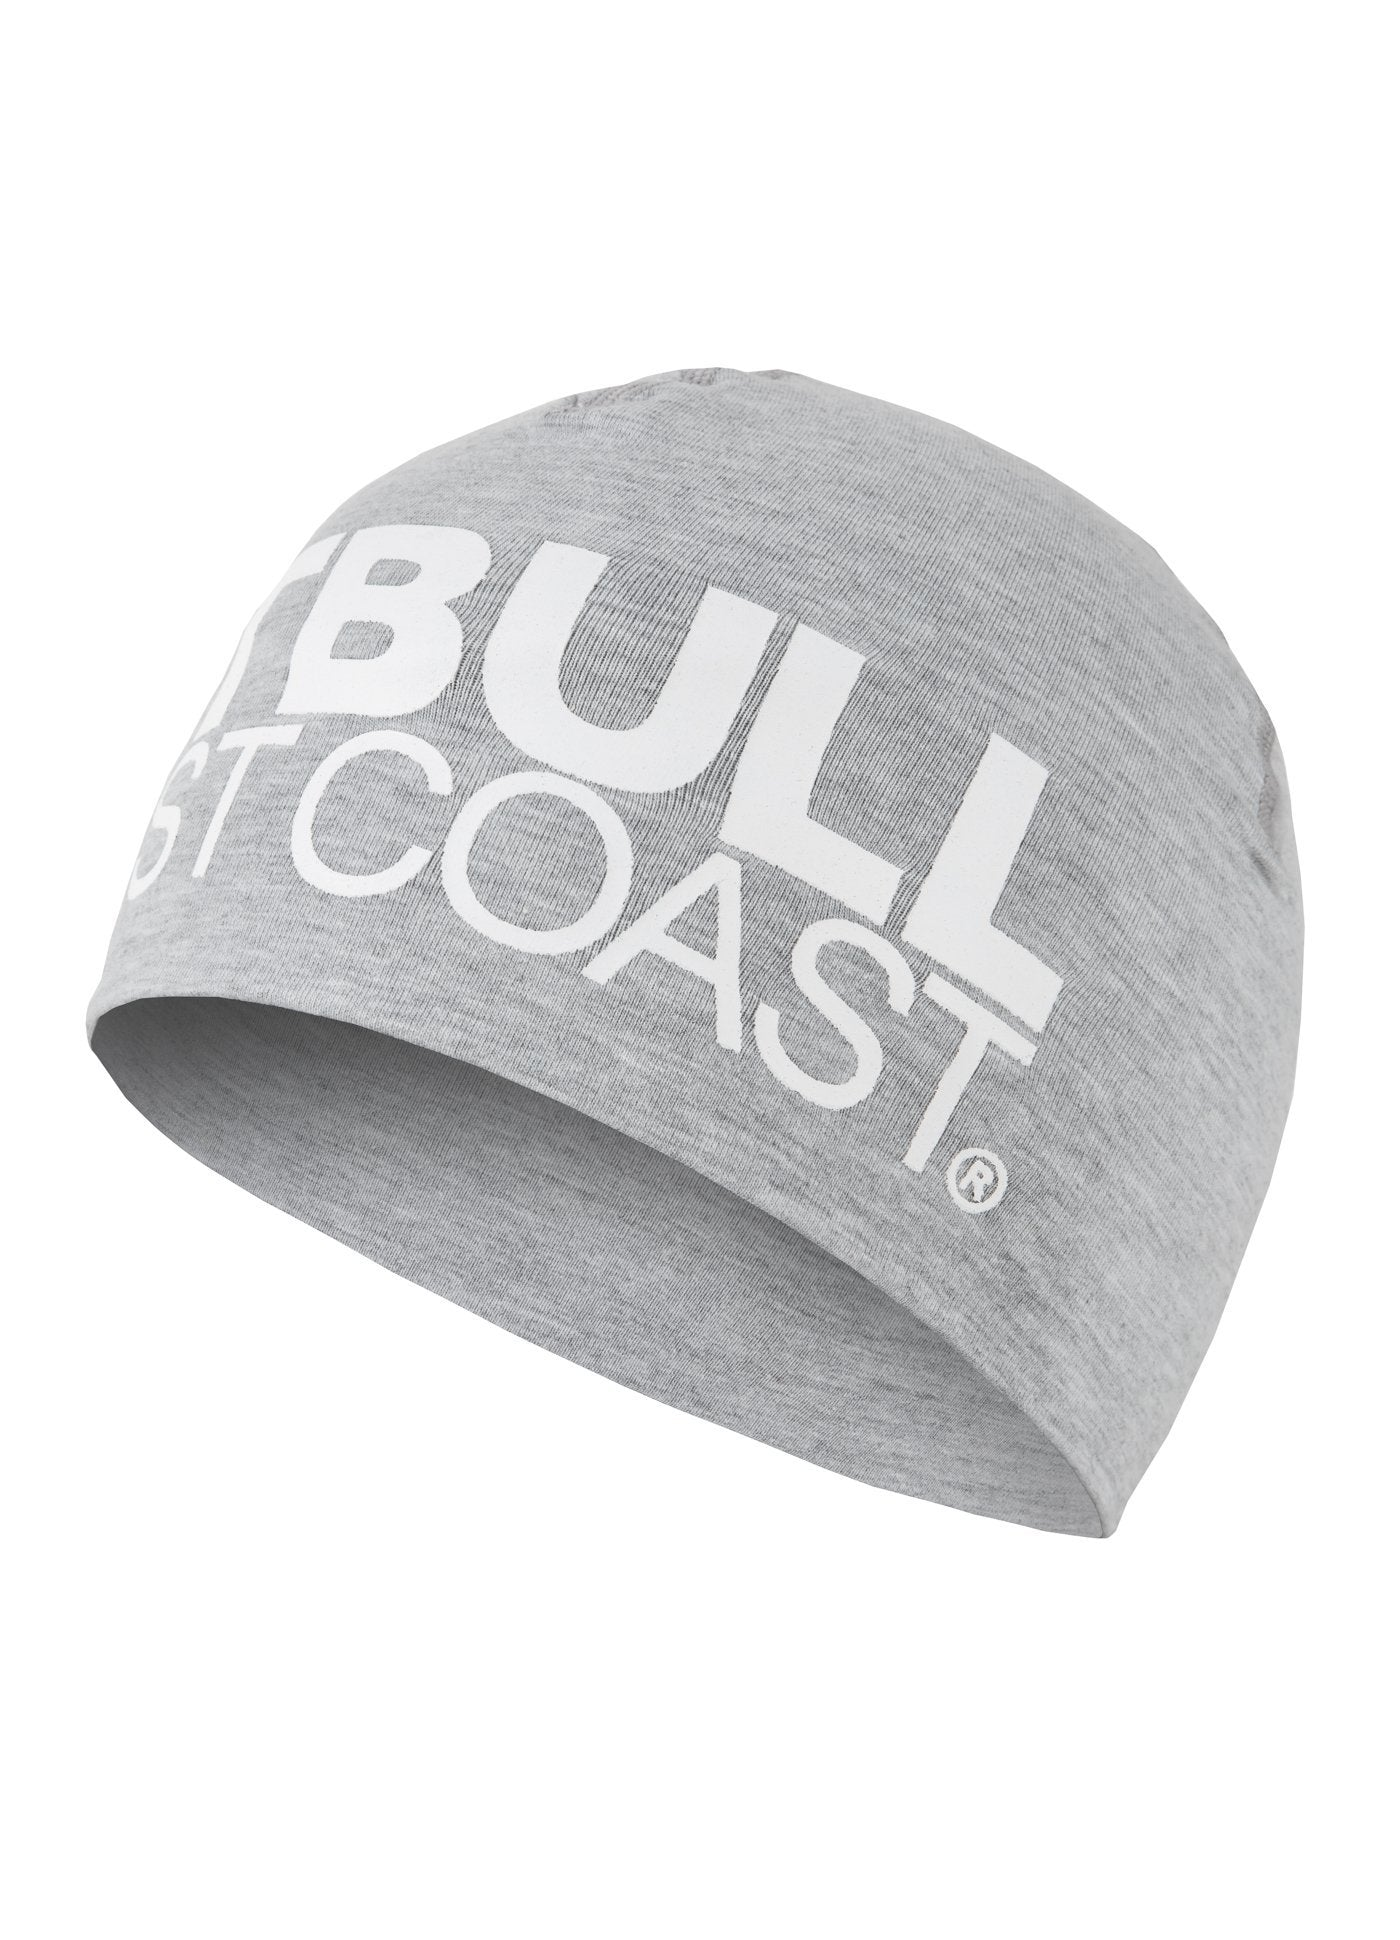 Compression Beanie TNT Grey - Pitbull West Coast U.S.A.